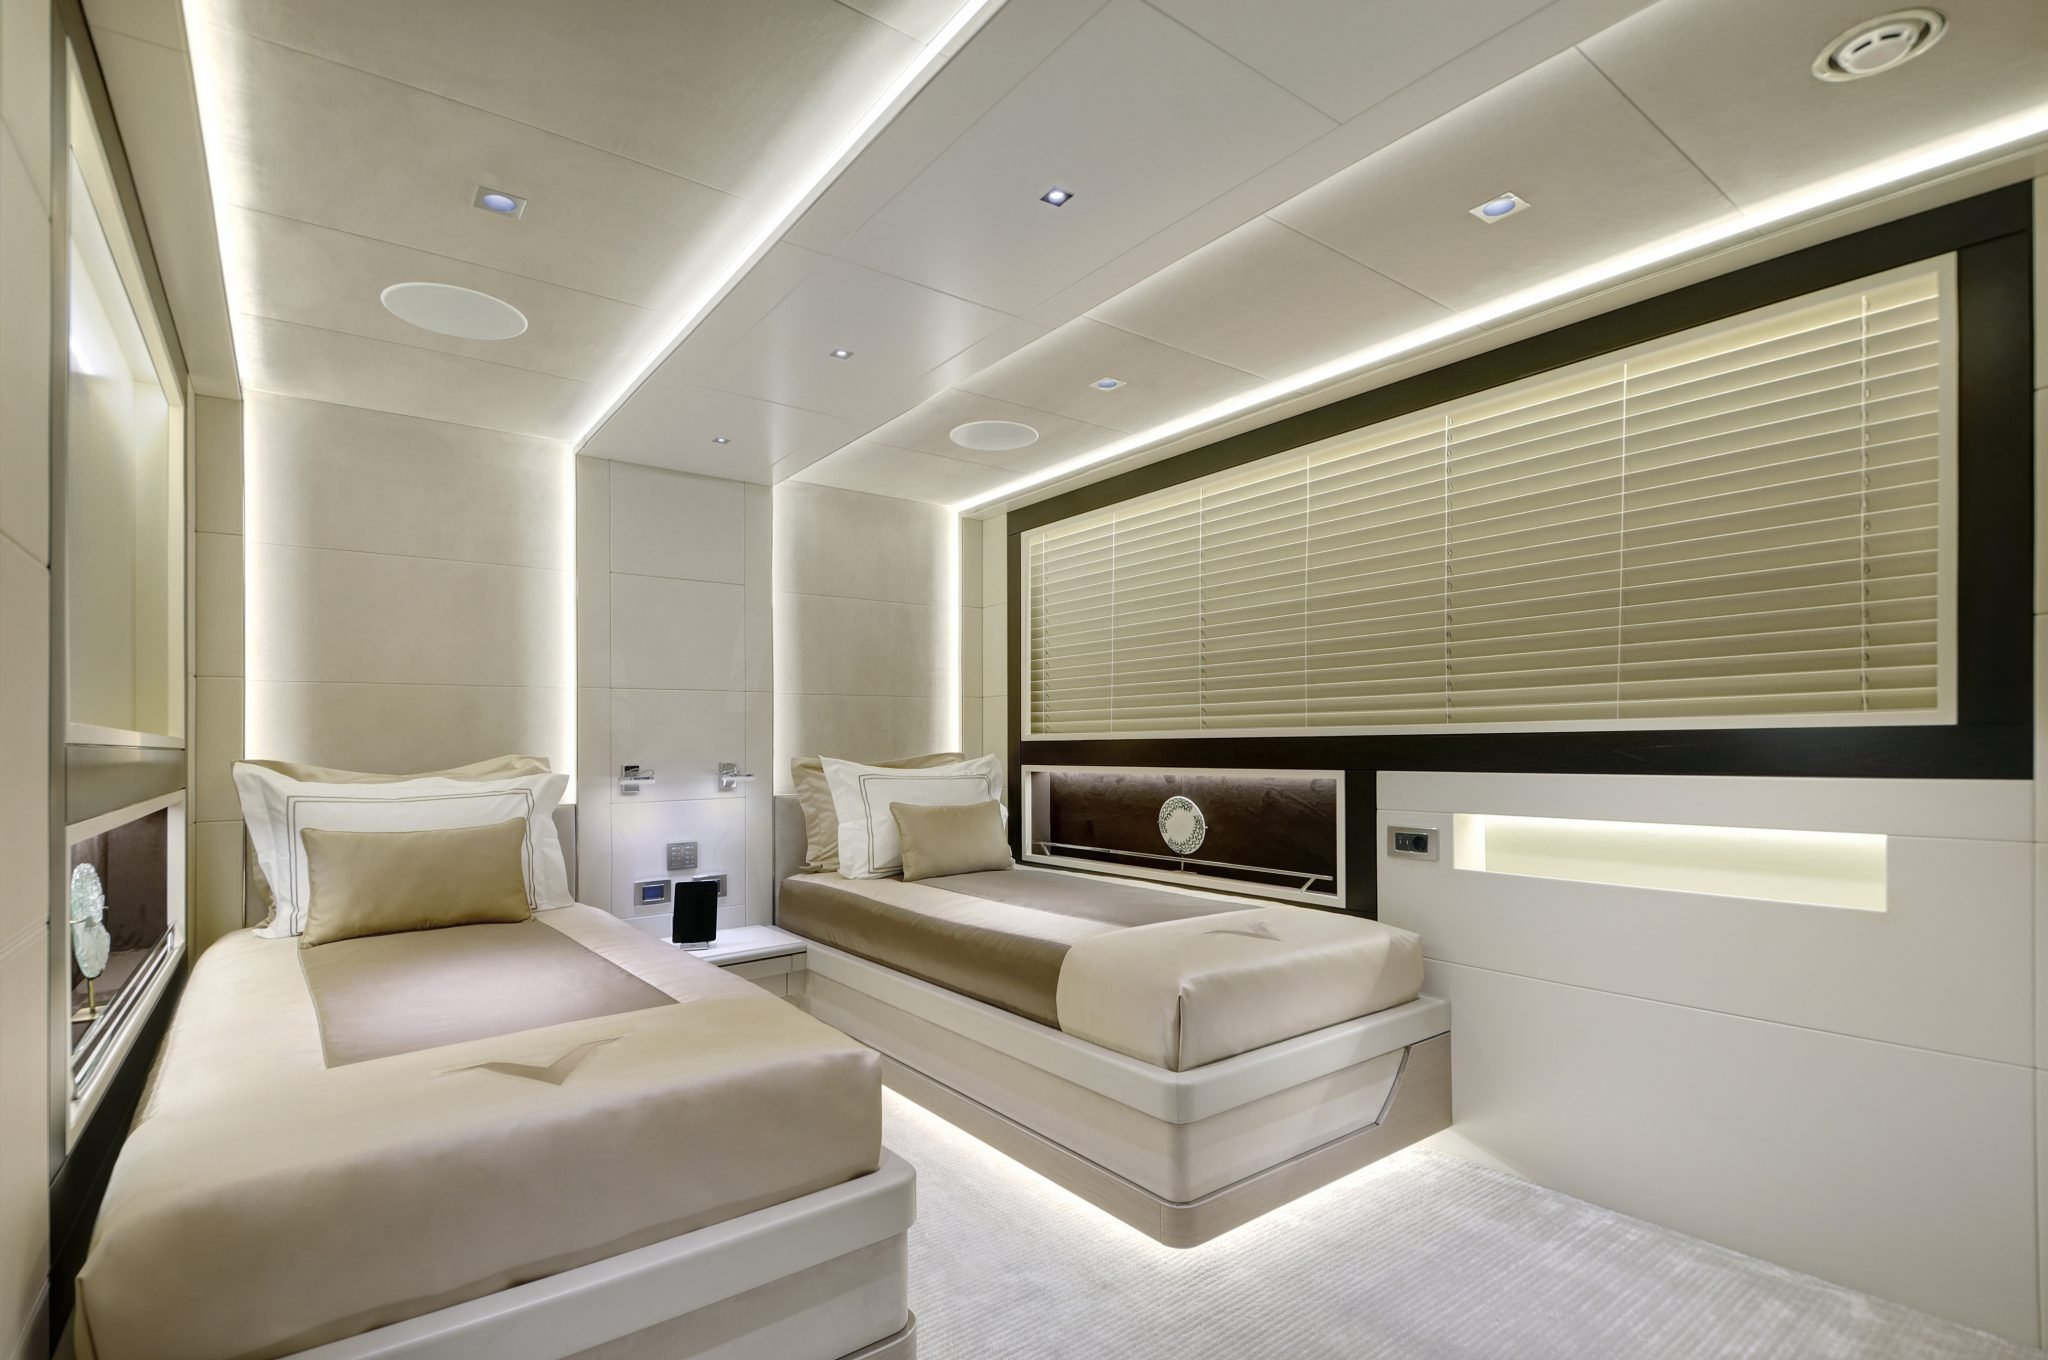 44m Virtus Yacht Twin Cabin with soft and charming interior